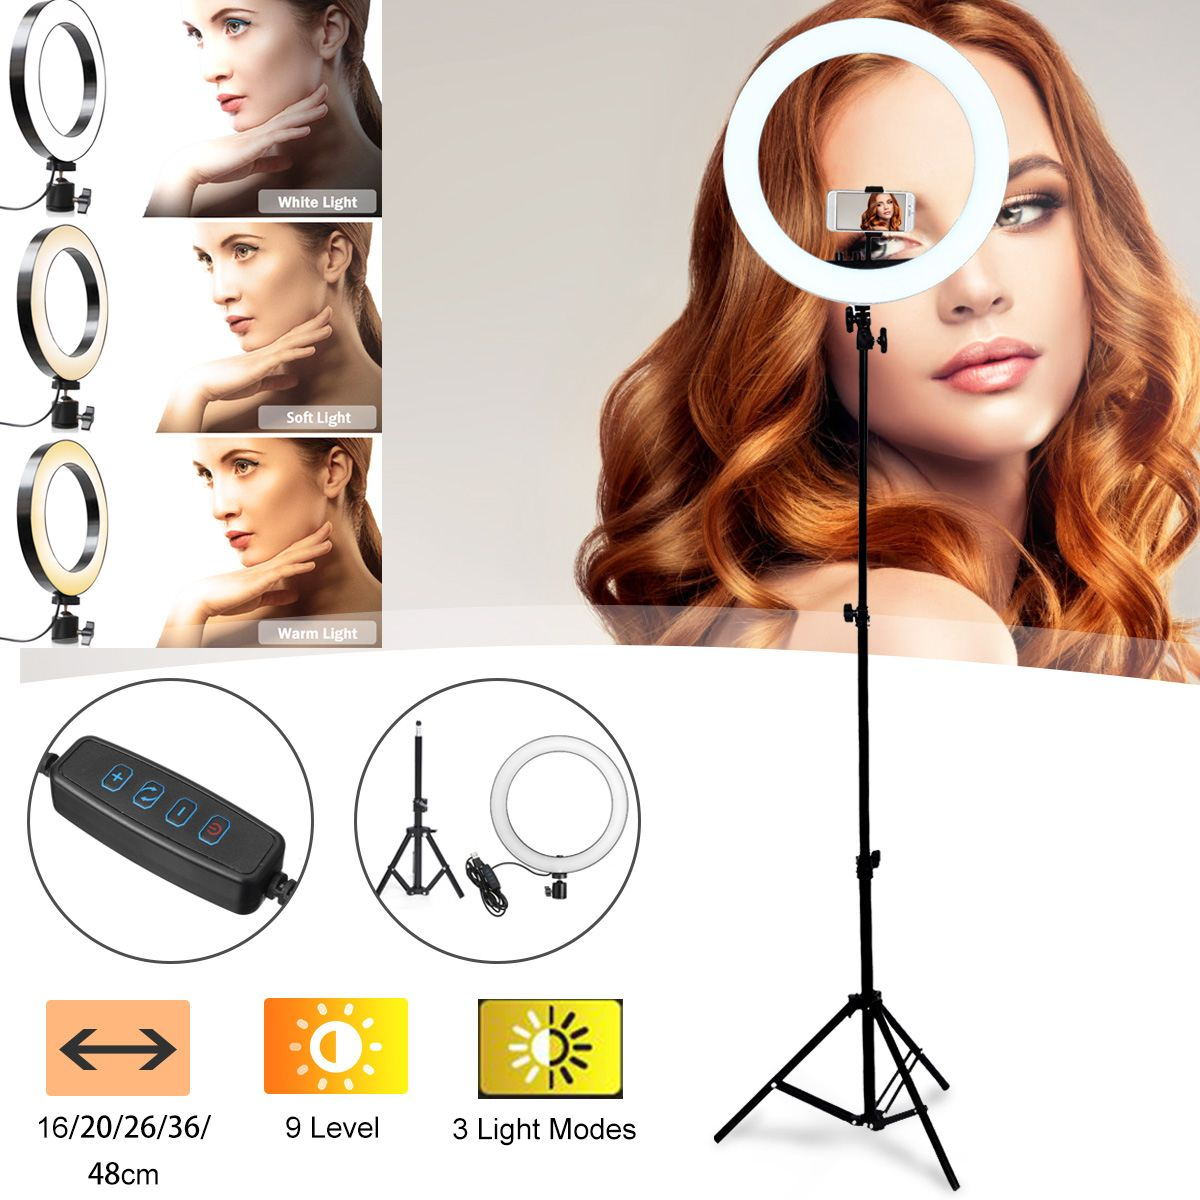 LED <font><b>Ring</b></font> <font><b>Light</b></font> <font><b>16</b></font>/20/26/36/48cm Dimmable Selfie <font><b>Ring</b></font> Lamp Photographic Lighting Video Live <font><b>Light</b></font> For Makeup Video Live Studio image